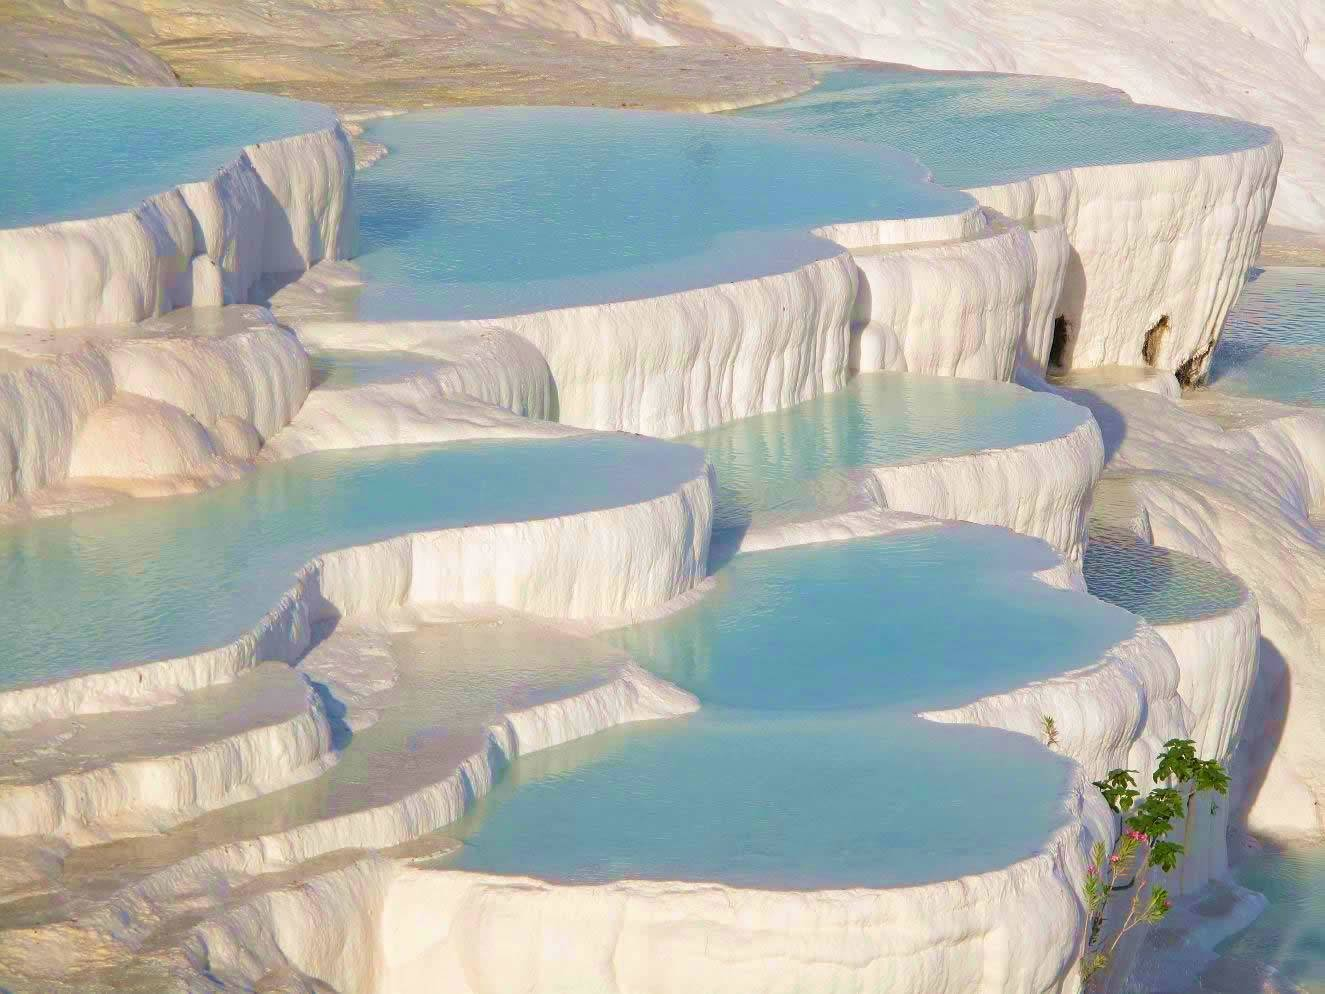 White Pools In Pamukkale